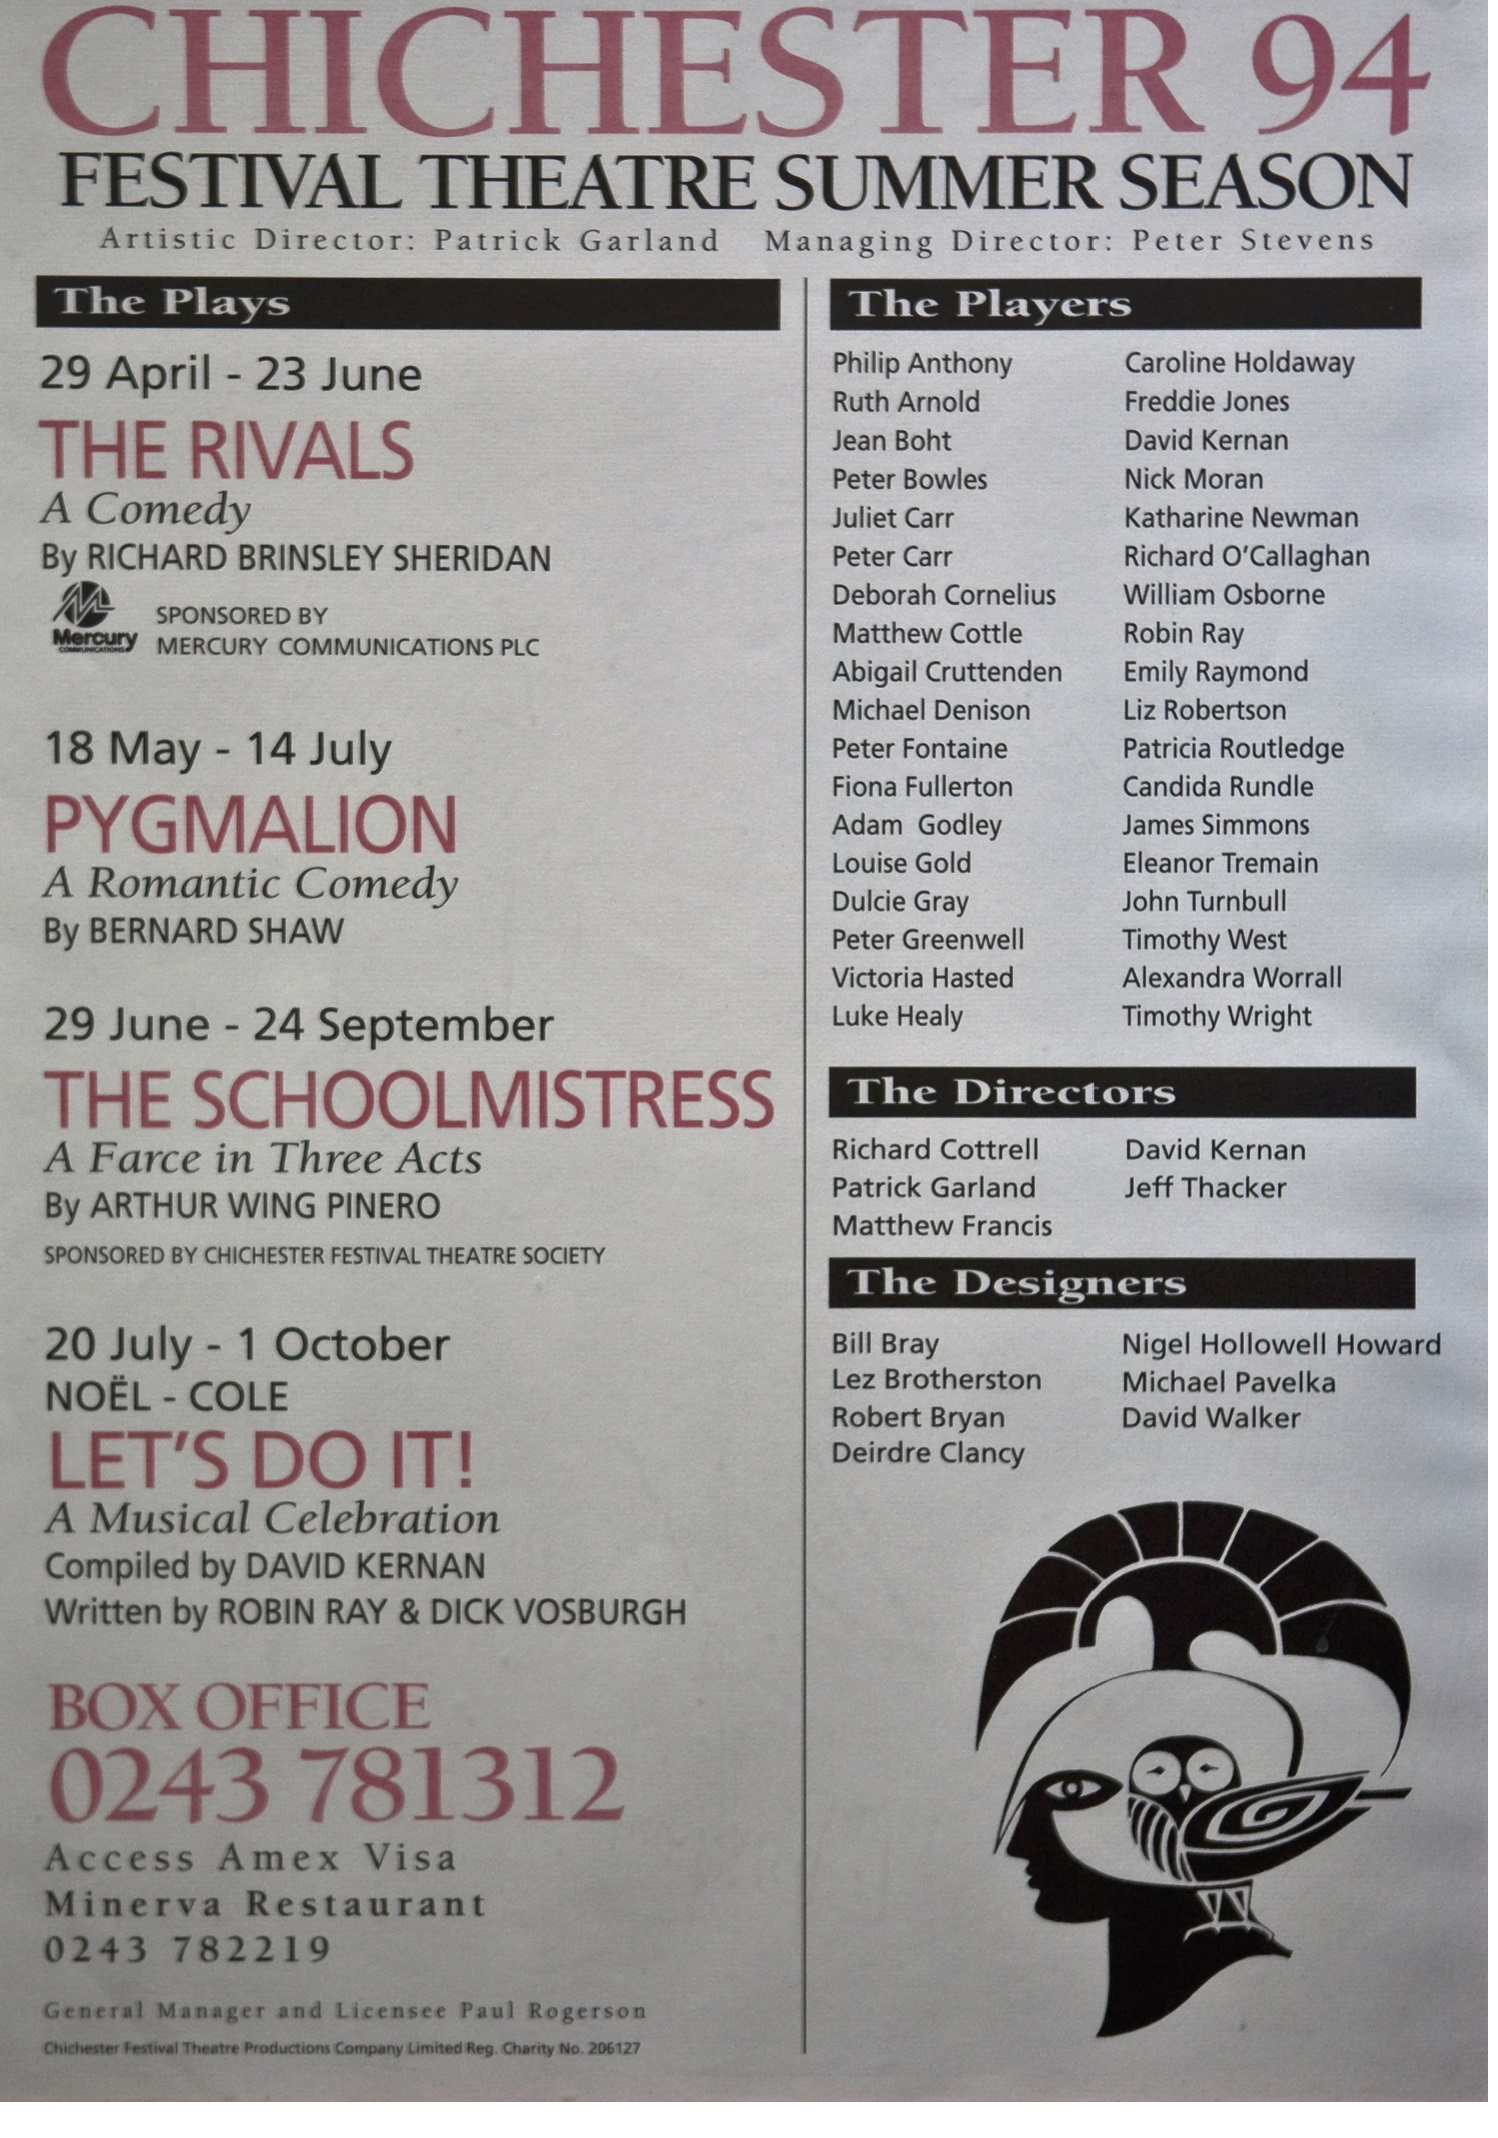 CFT1994 Summer Season Poster